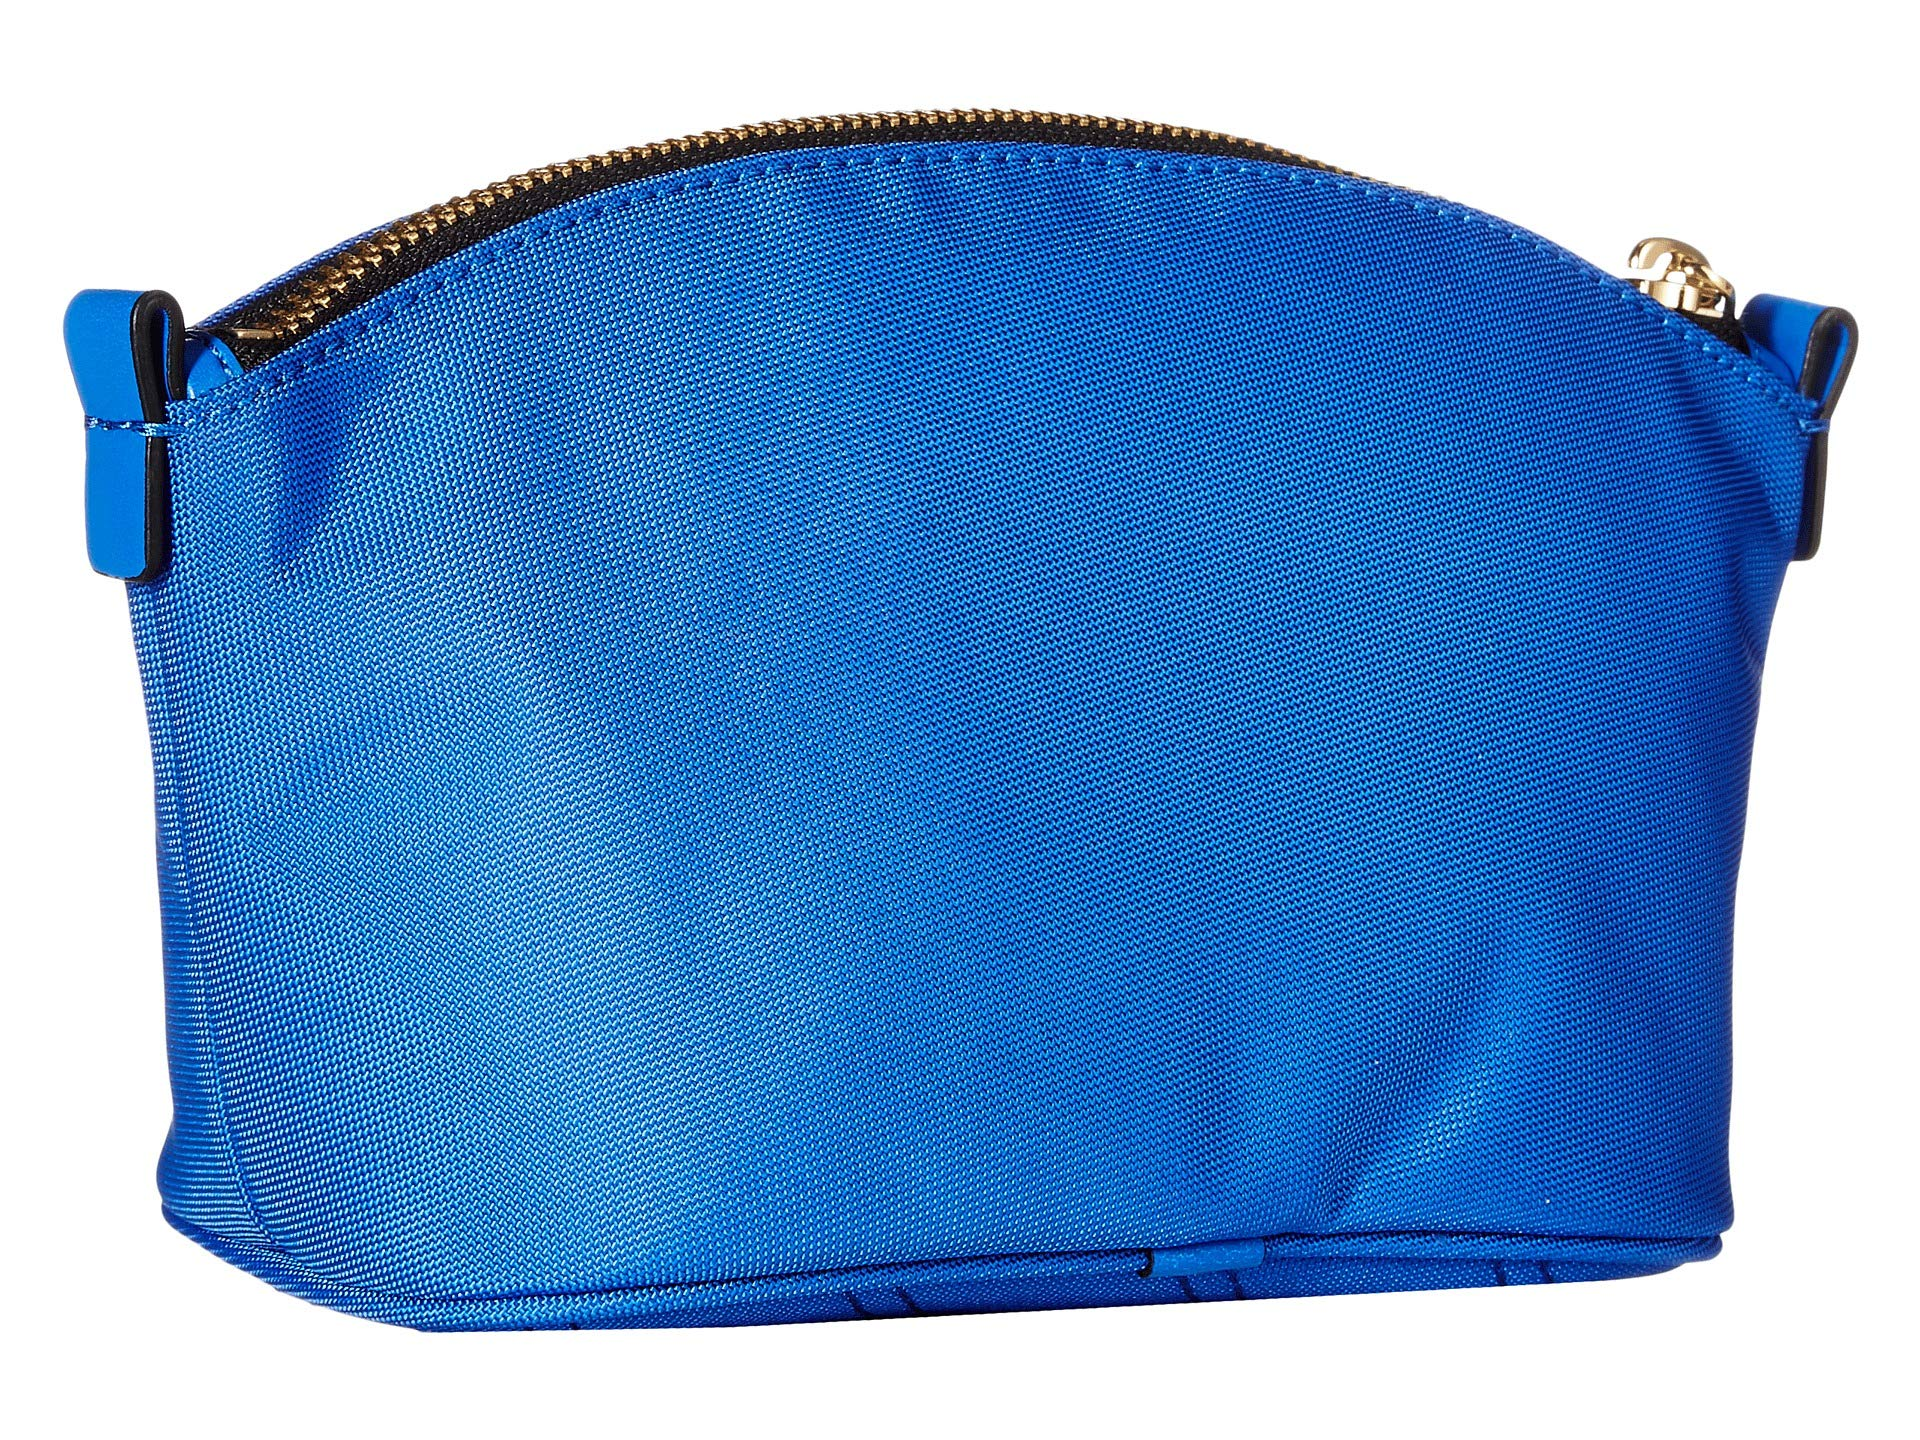 Blue Dazzling Trapeze Trek Marc Pack Jacobs UqY00w